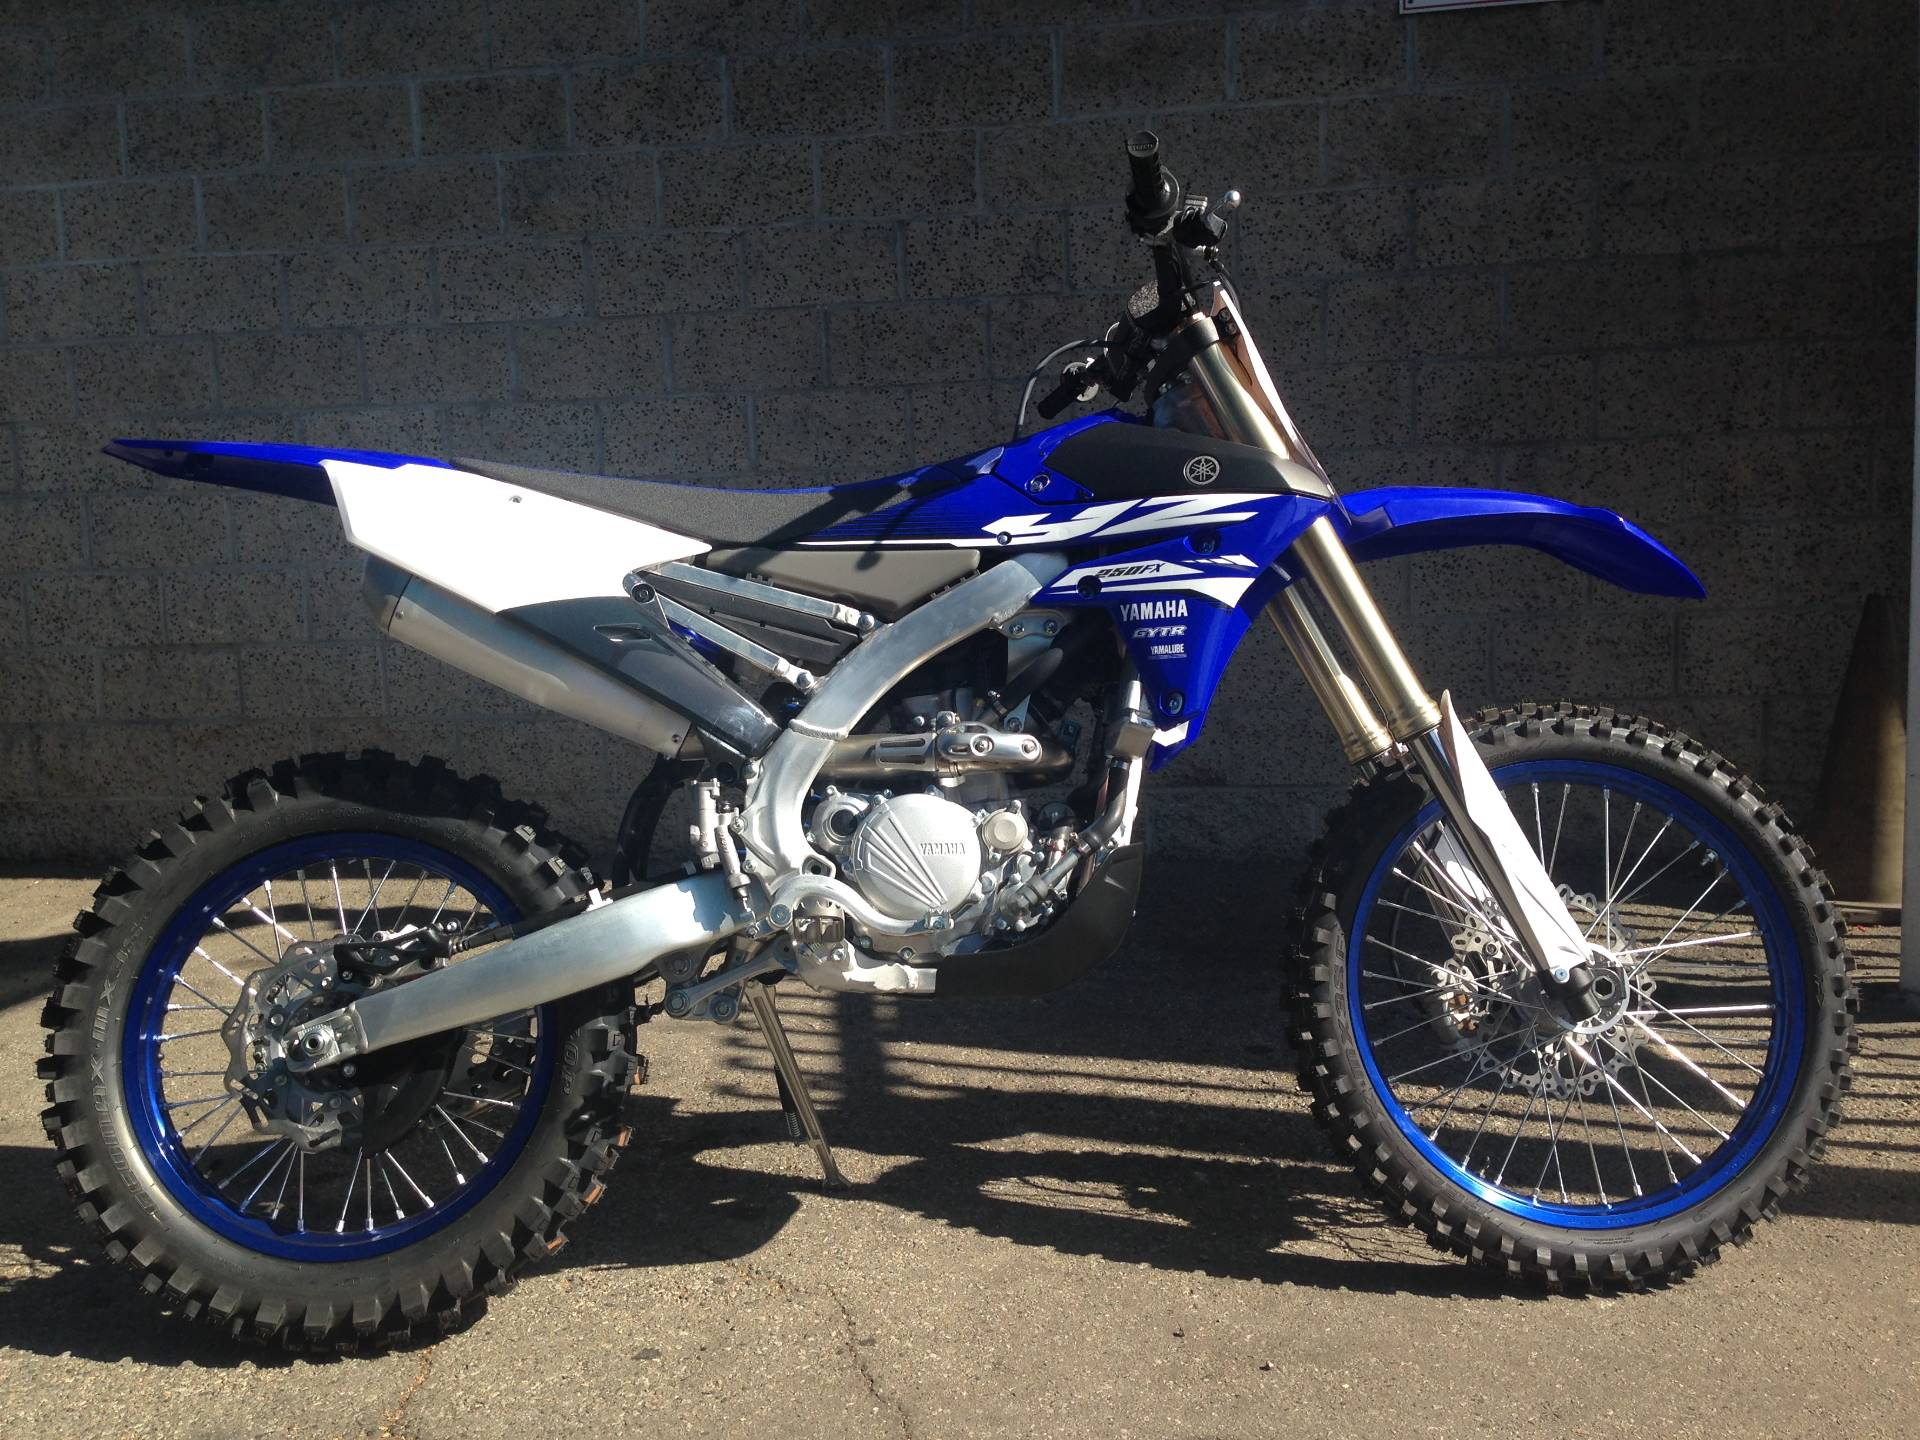 2018 yamaha yz250fx for sale for Yamaha yz250fx for sale